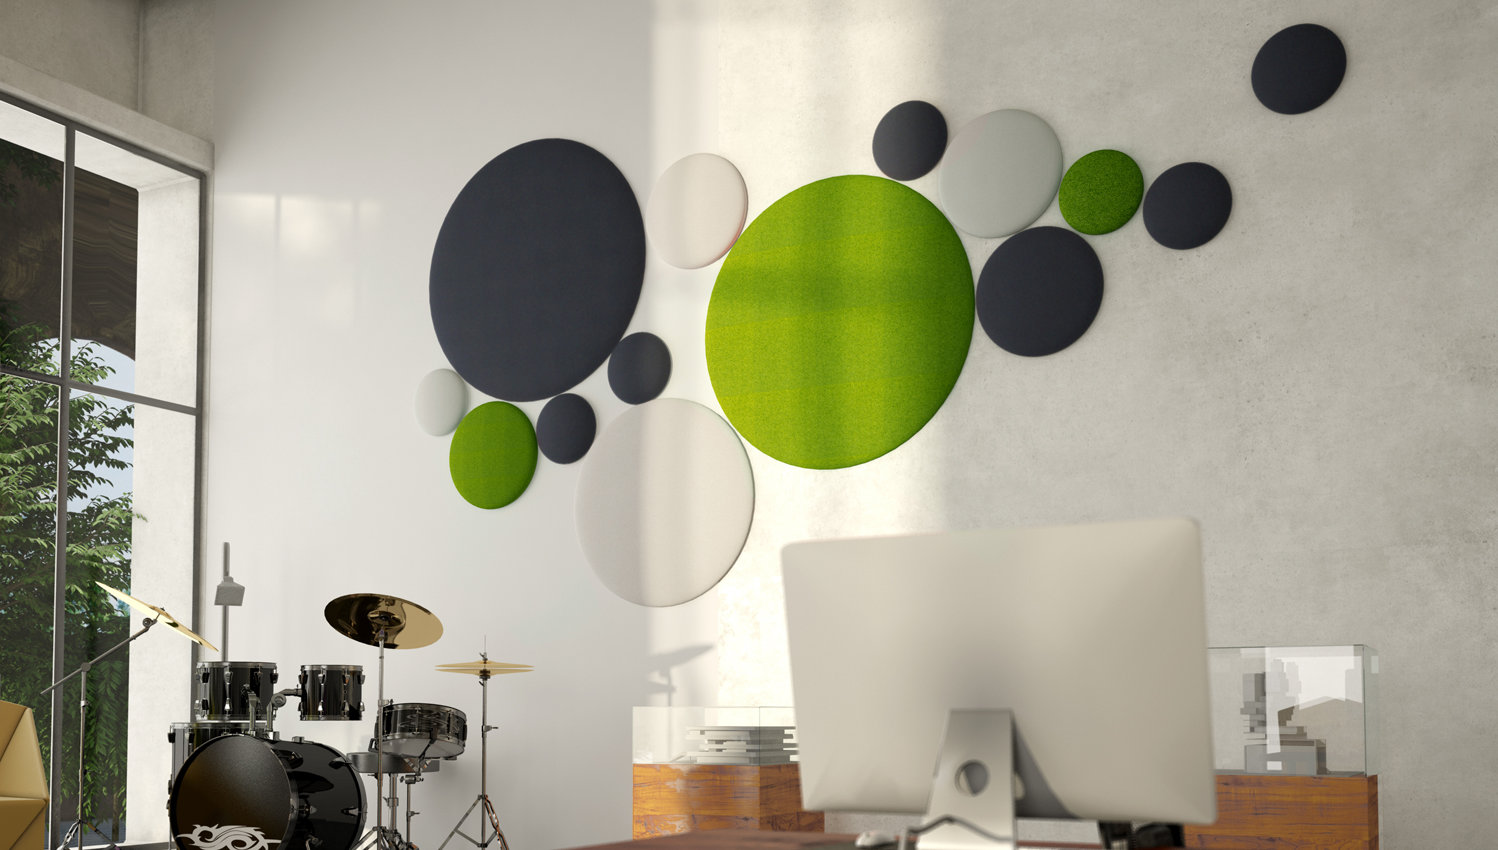 woolbubbles panneau acoustique ludique d coratif. Black Bedroom Furniture Sets. Home Design Ideas